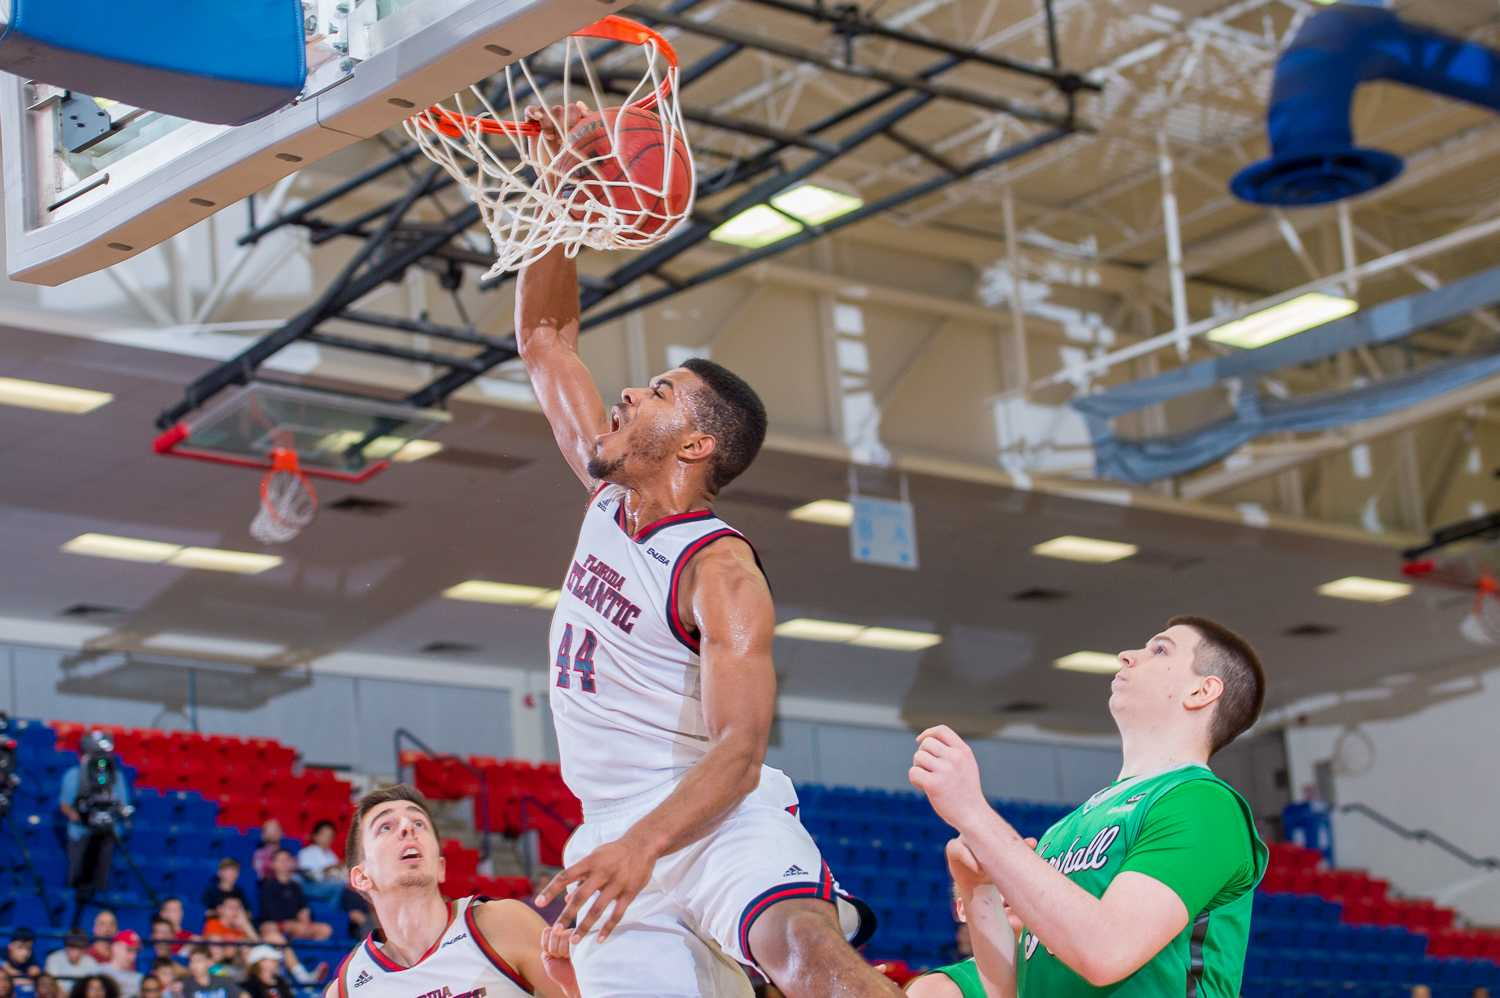 Kelvin Penn (44) dunks the ball on a breakaway in the first half while the players around him watch.